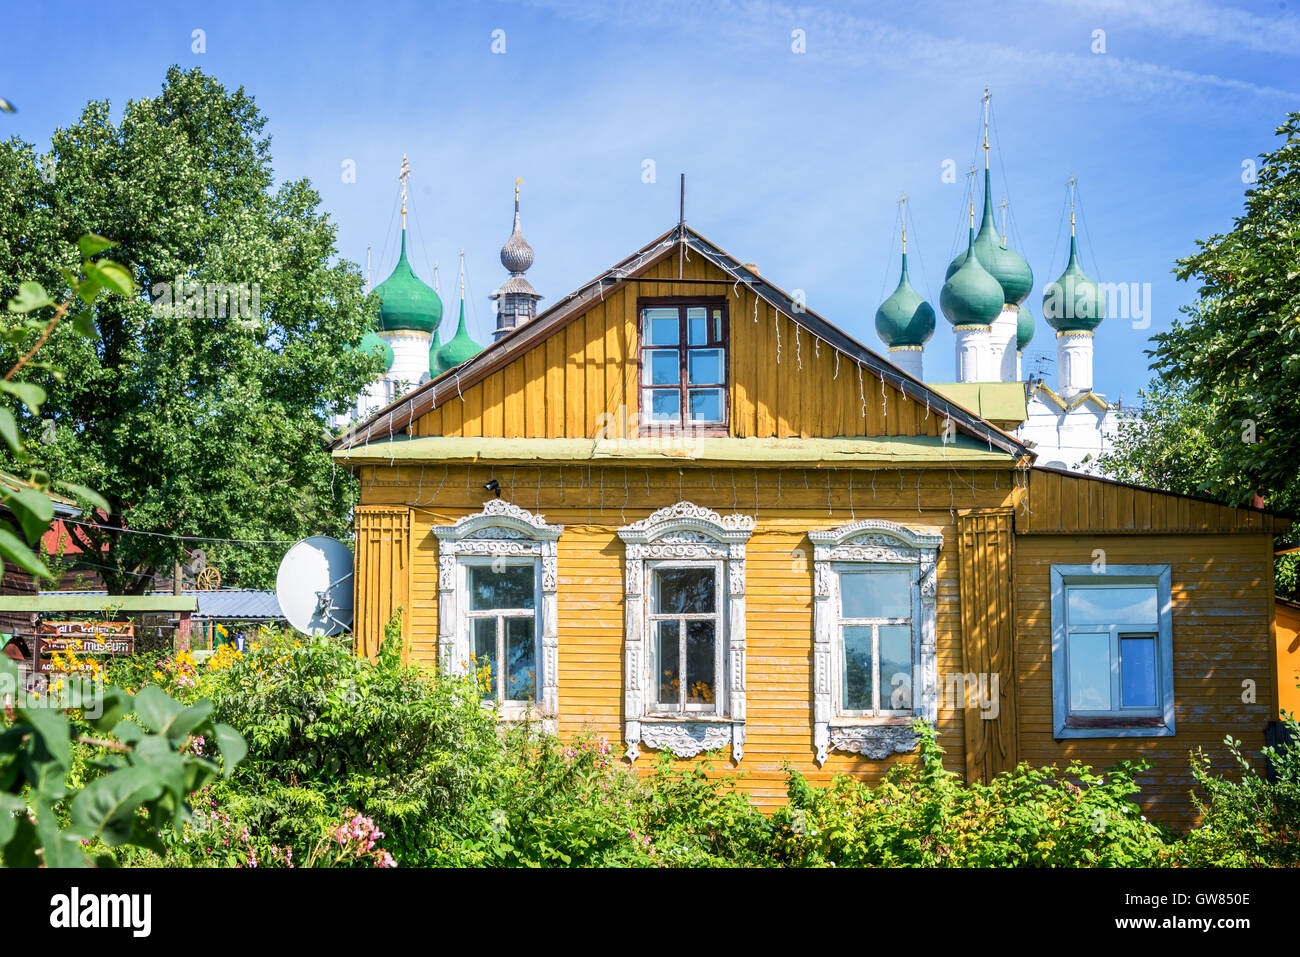 Colorful traditional wooden house in Rostov, Golden ring,  Russia - Stock Image